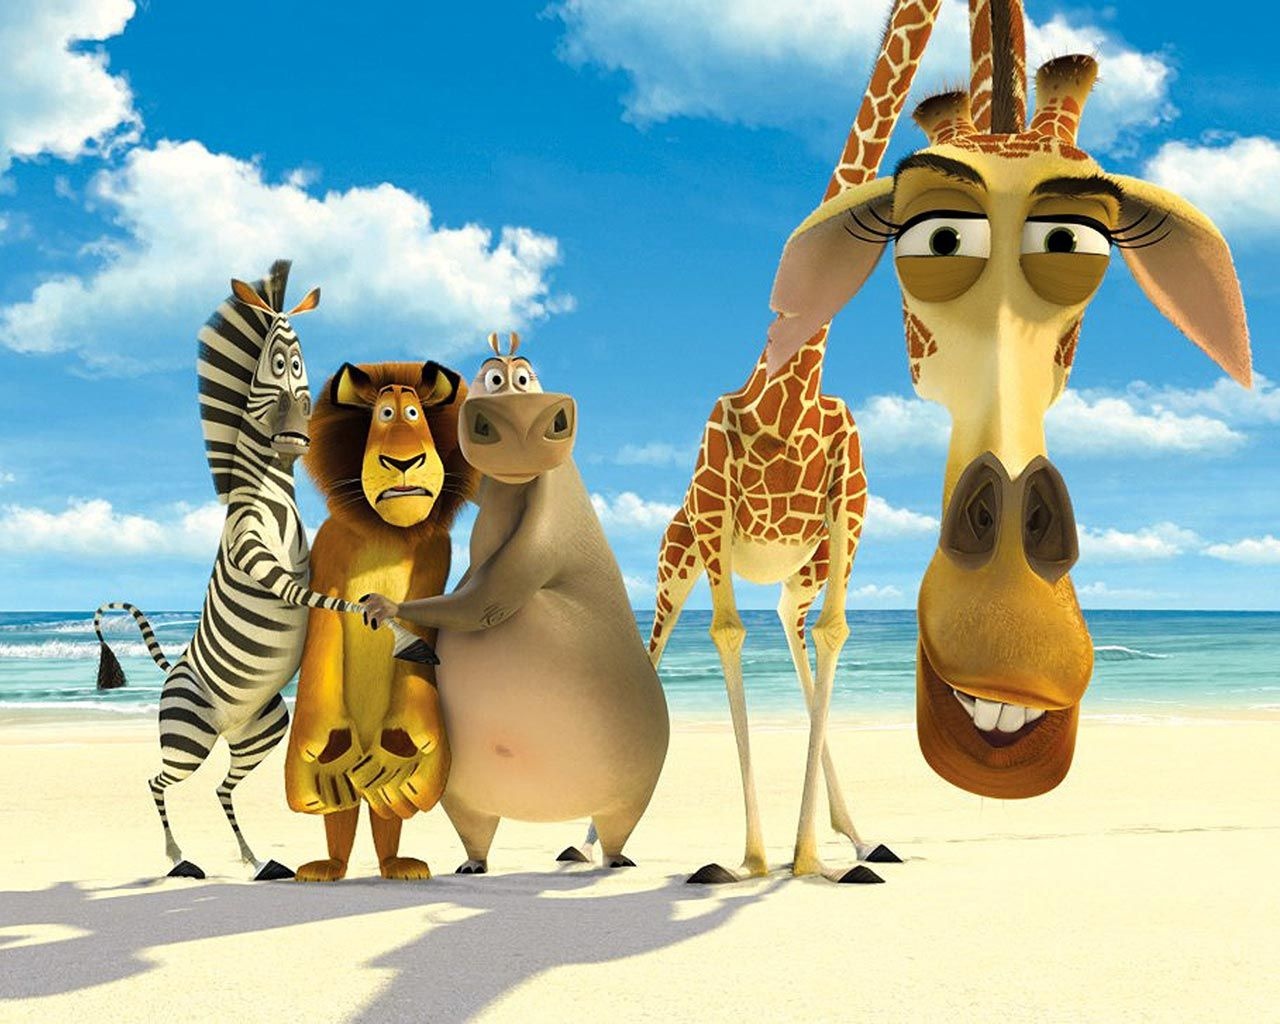 20 blue carton wallpapers for kids   madagascar, dreamworks and movie